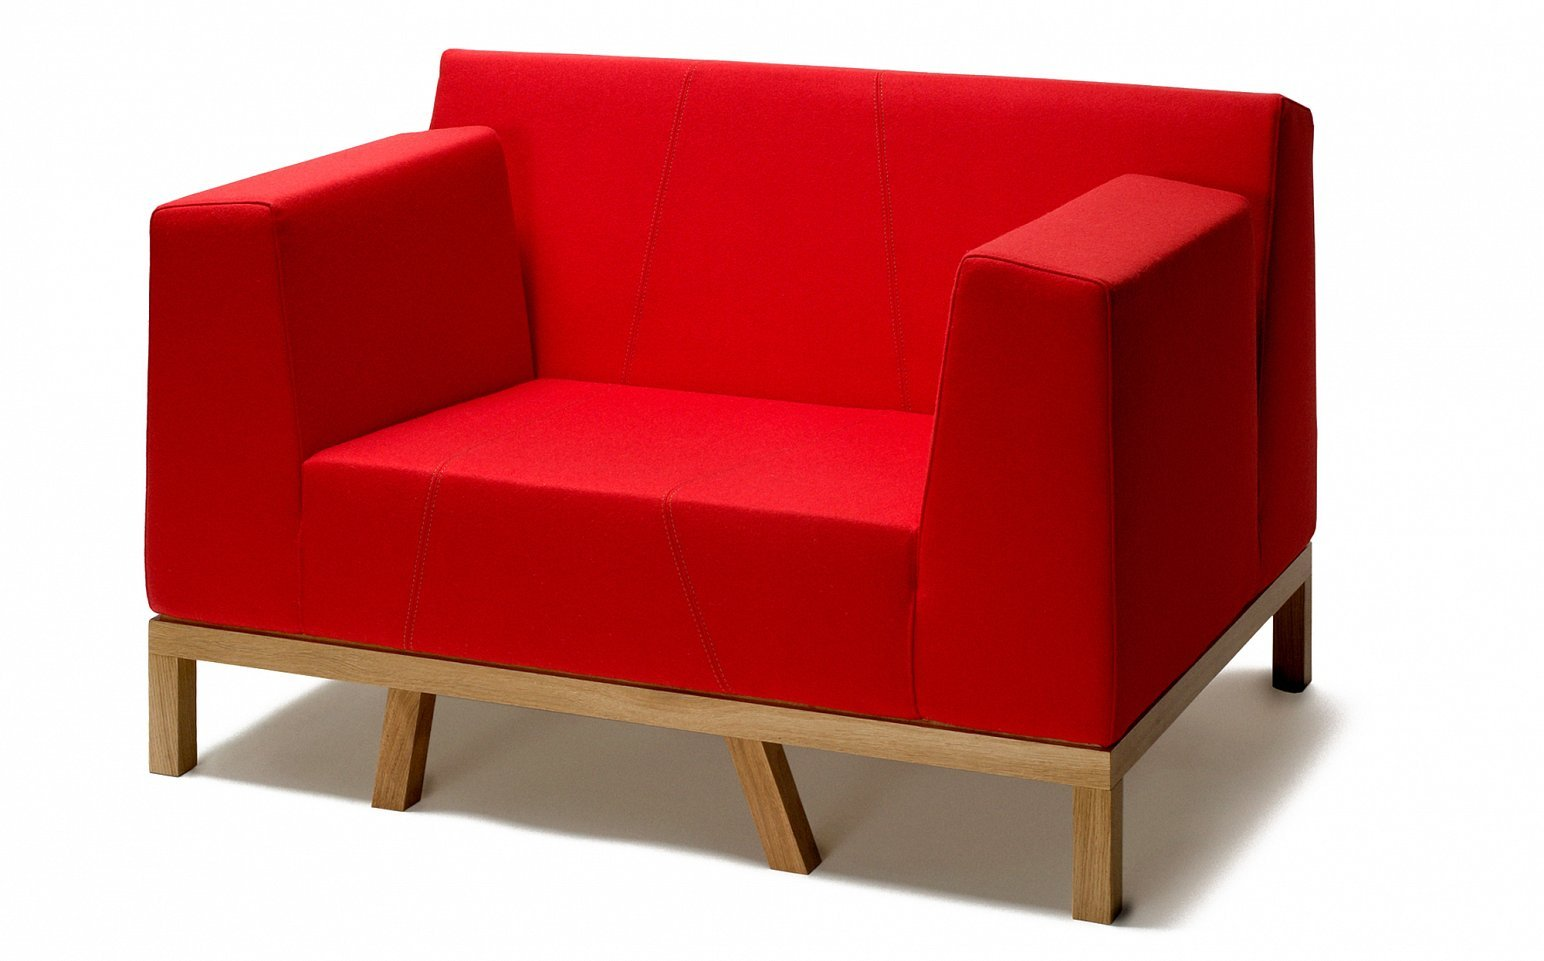 Love Seat Low By Ineke Hans For Inekehans Collection For Sale At Pamono